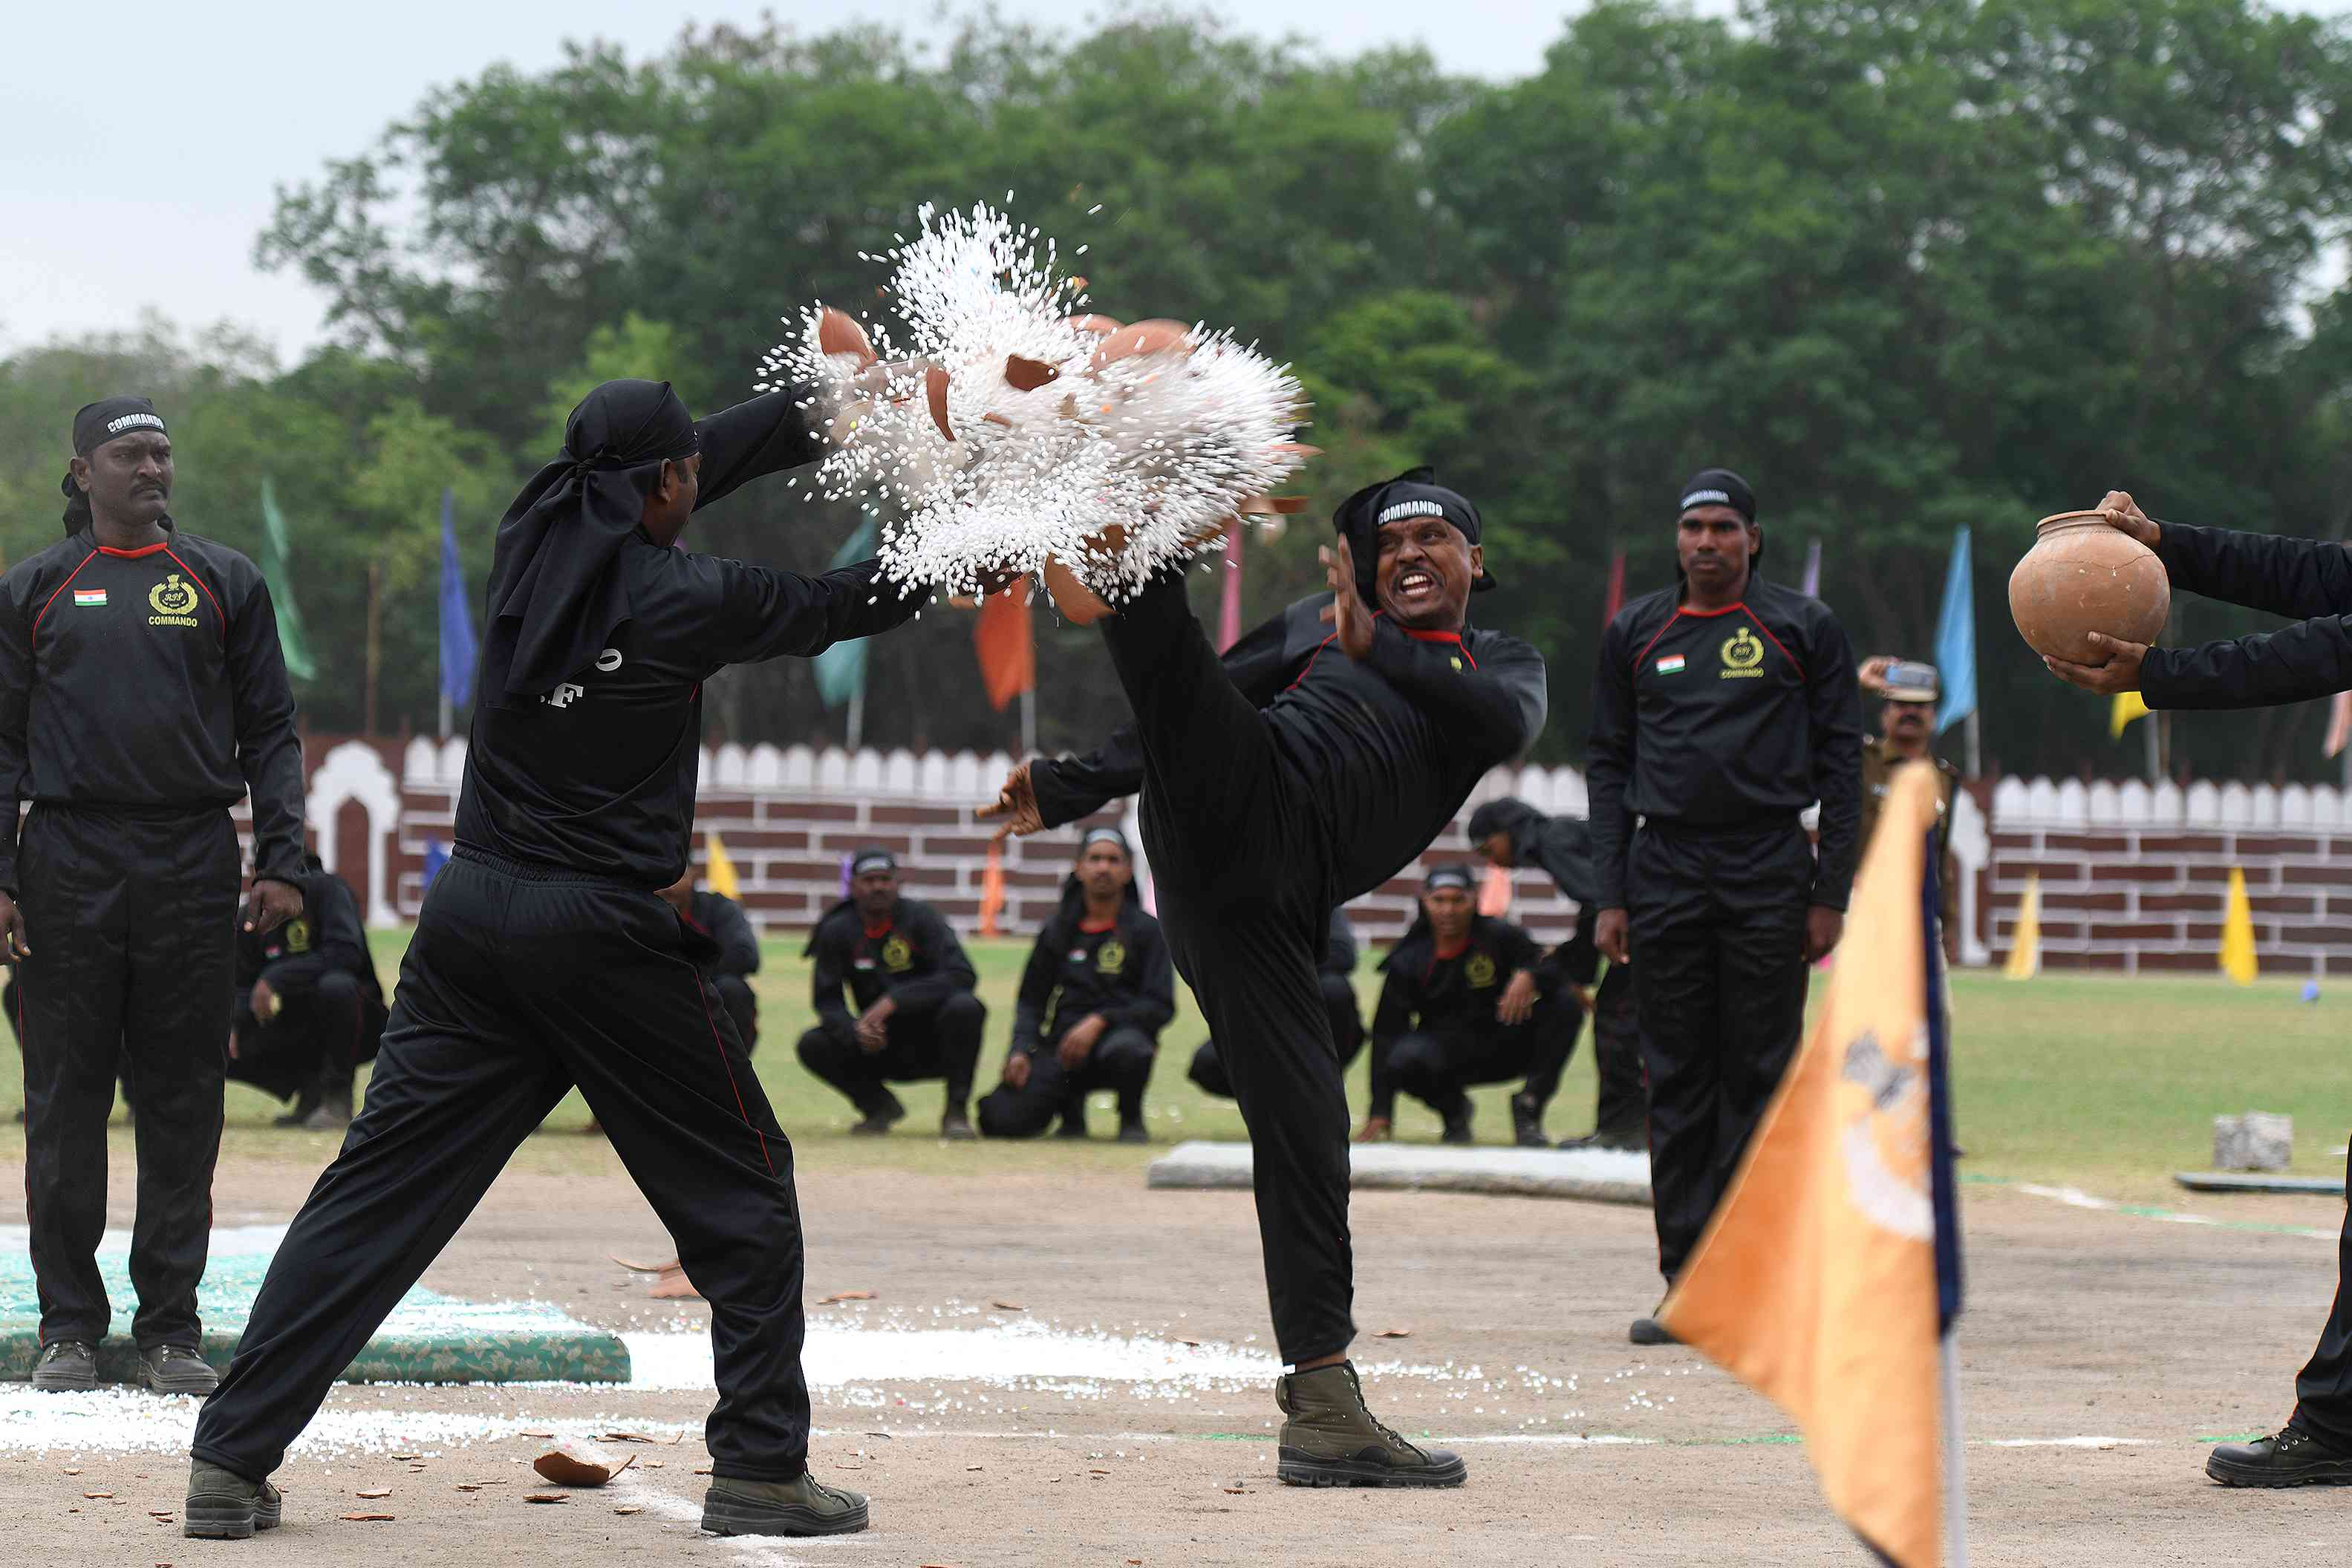 Railway Protection Force commandos perform stunts during Republic Day celebrations in Secunderabad (Photo credit: AFP)